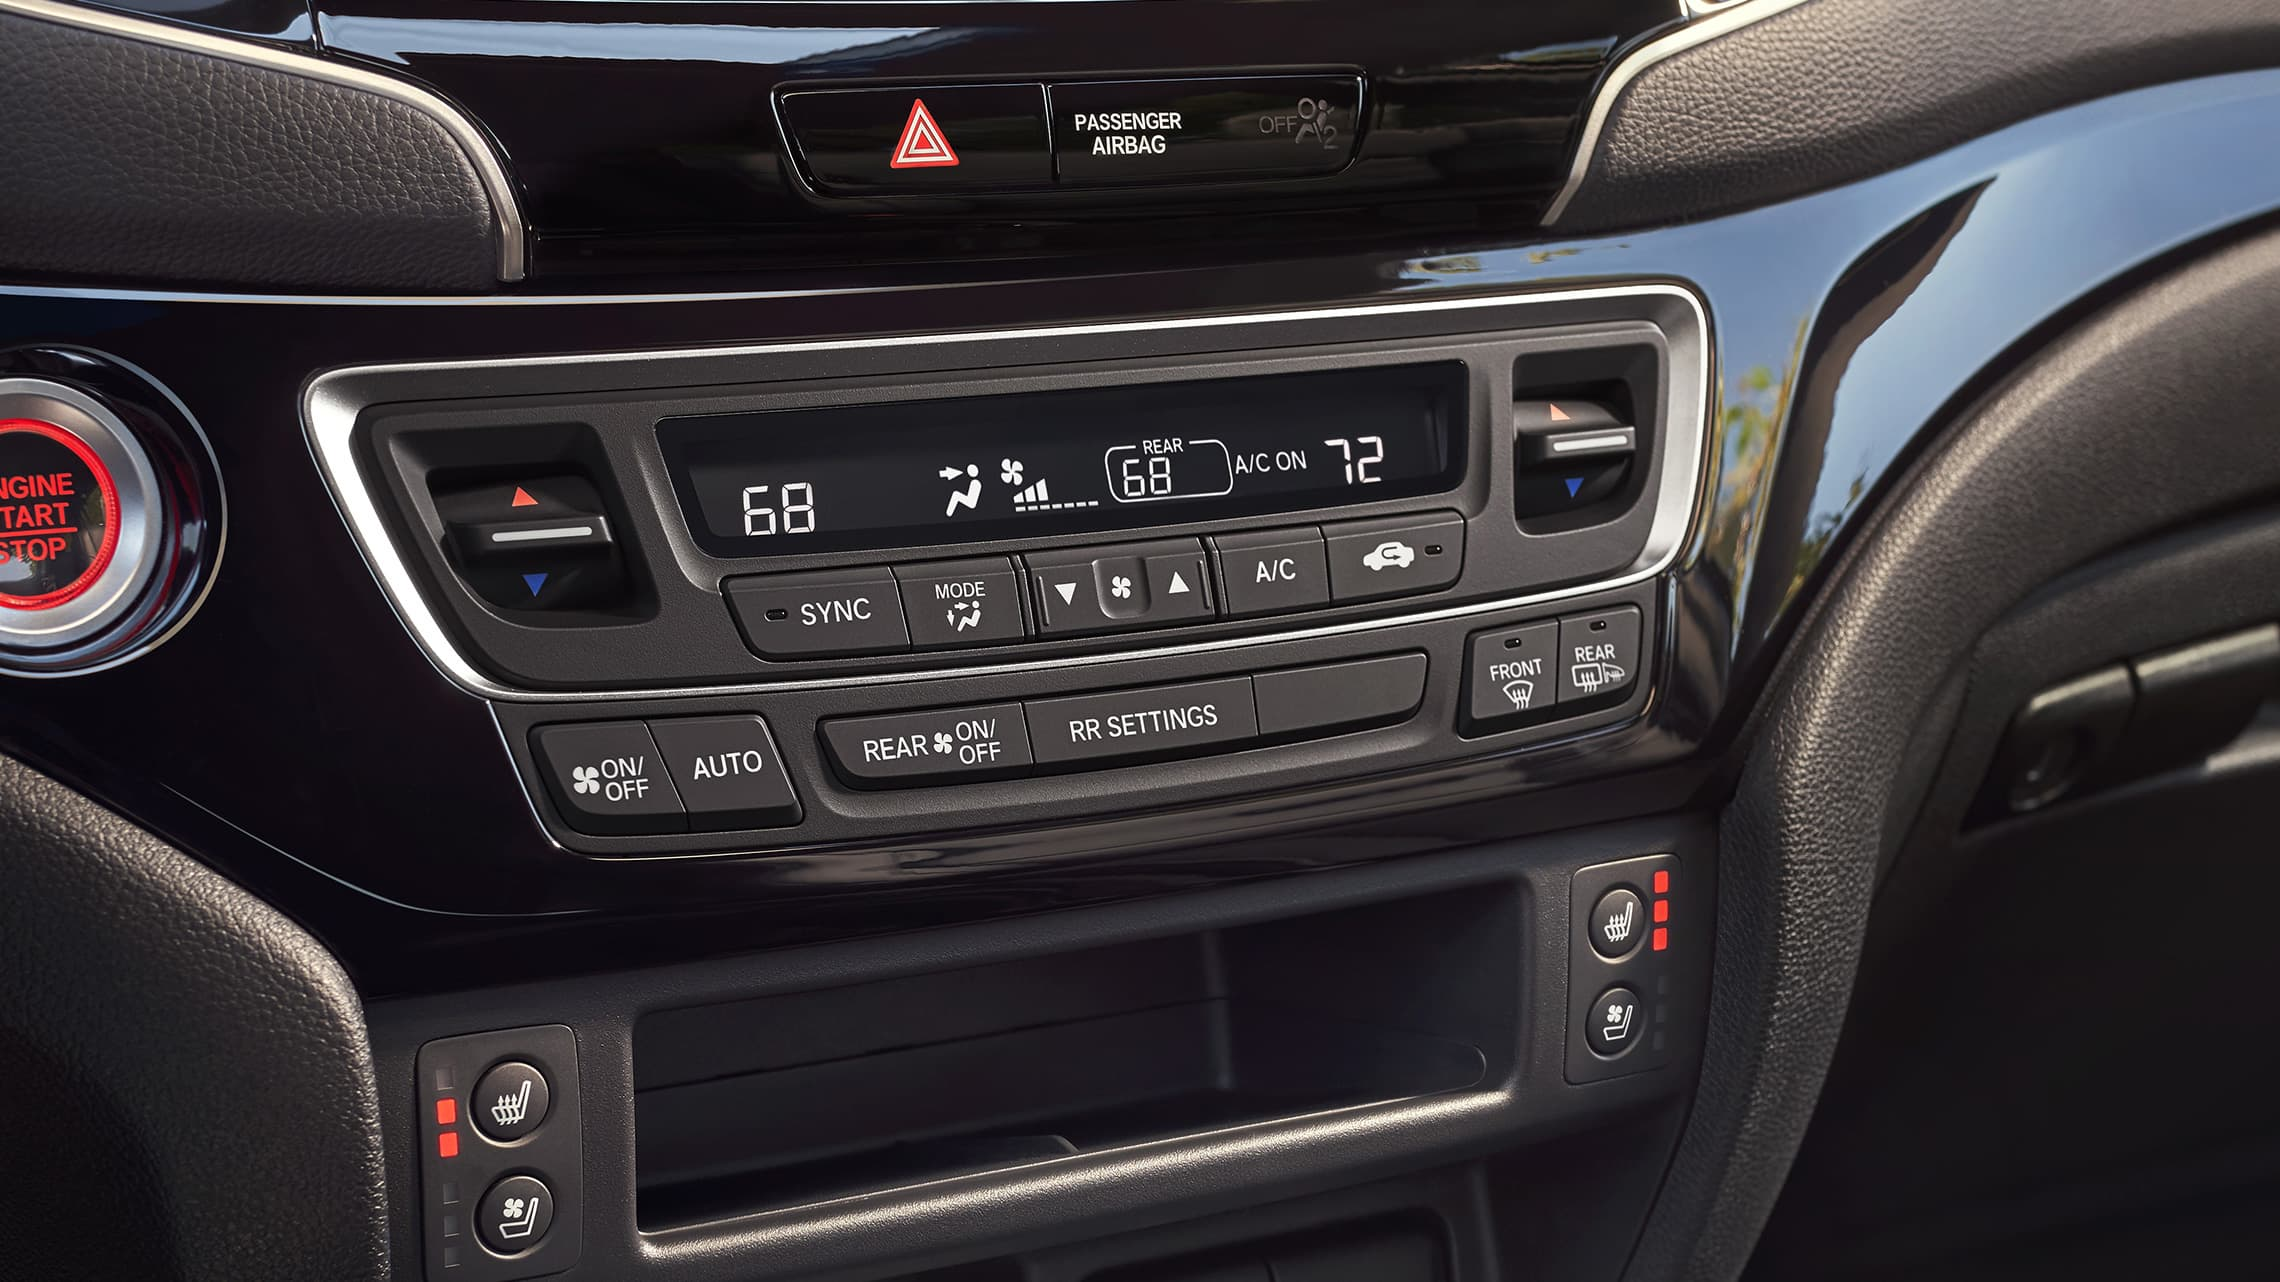 Tri-zone automatic climate control detail on the 2020 Honda Passport Elite with Black Leather interior.